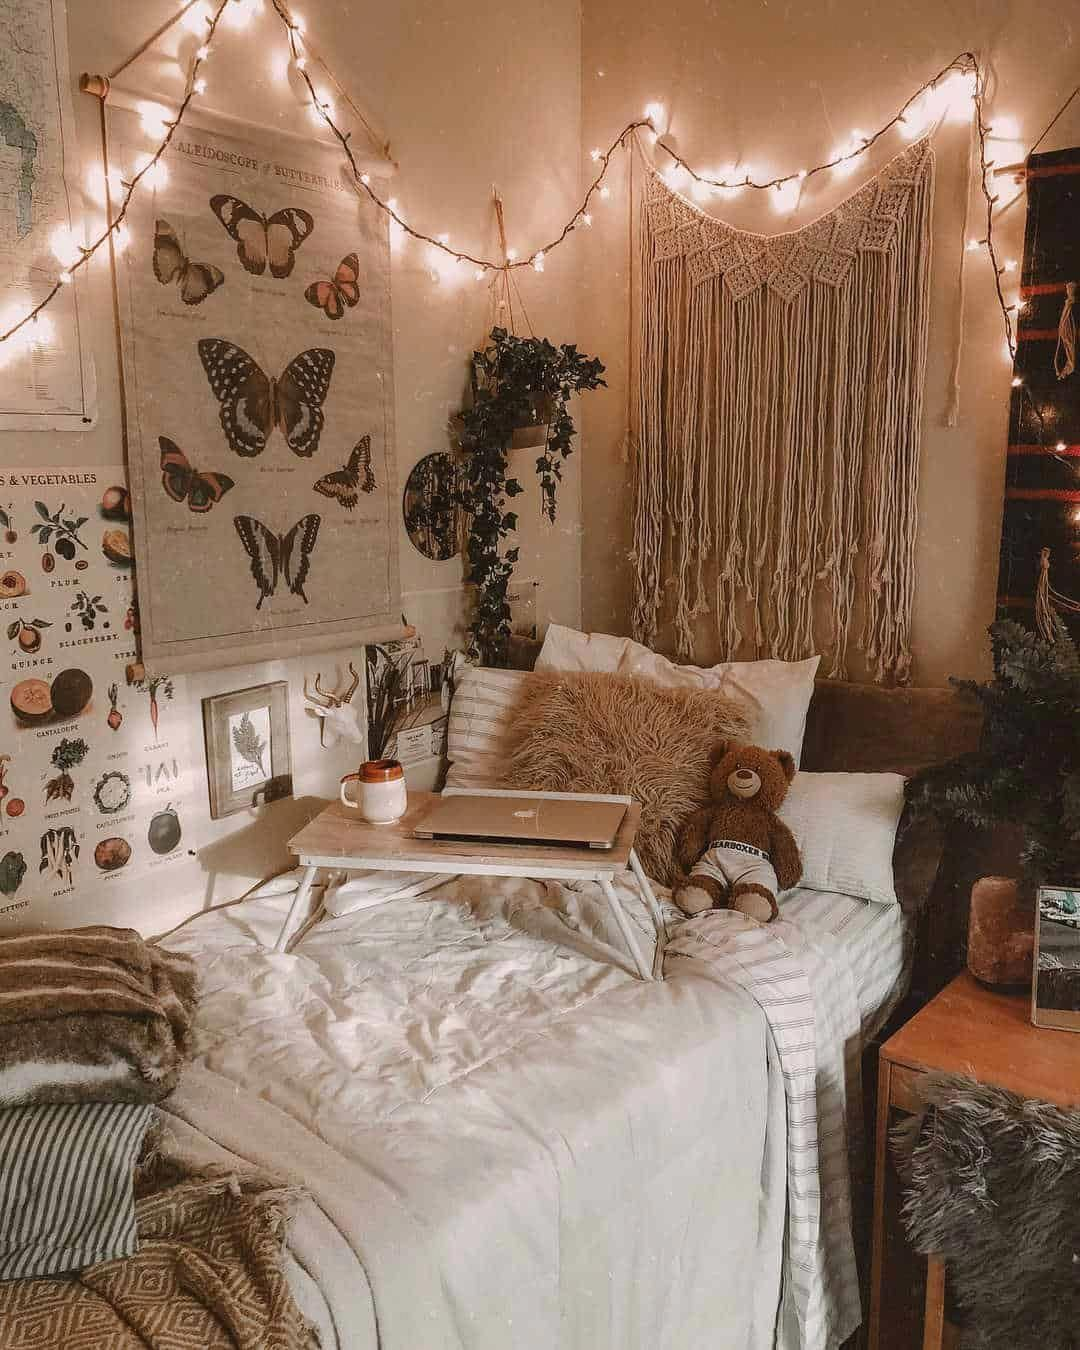 14 Dorm Room Ideas for Girls That Are Melting Our